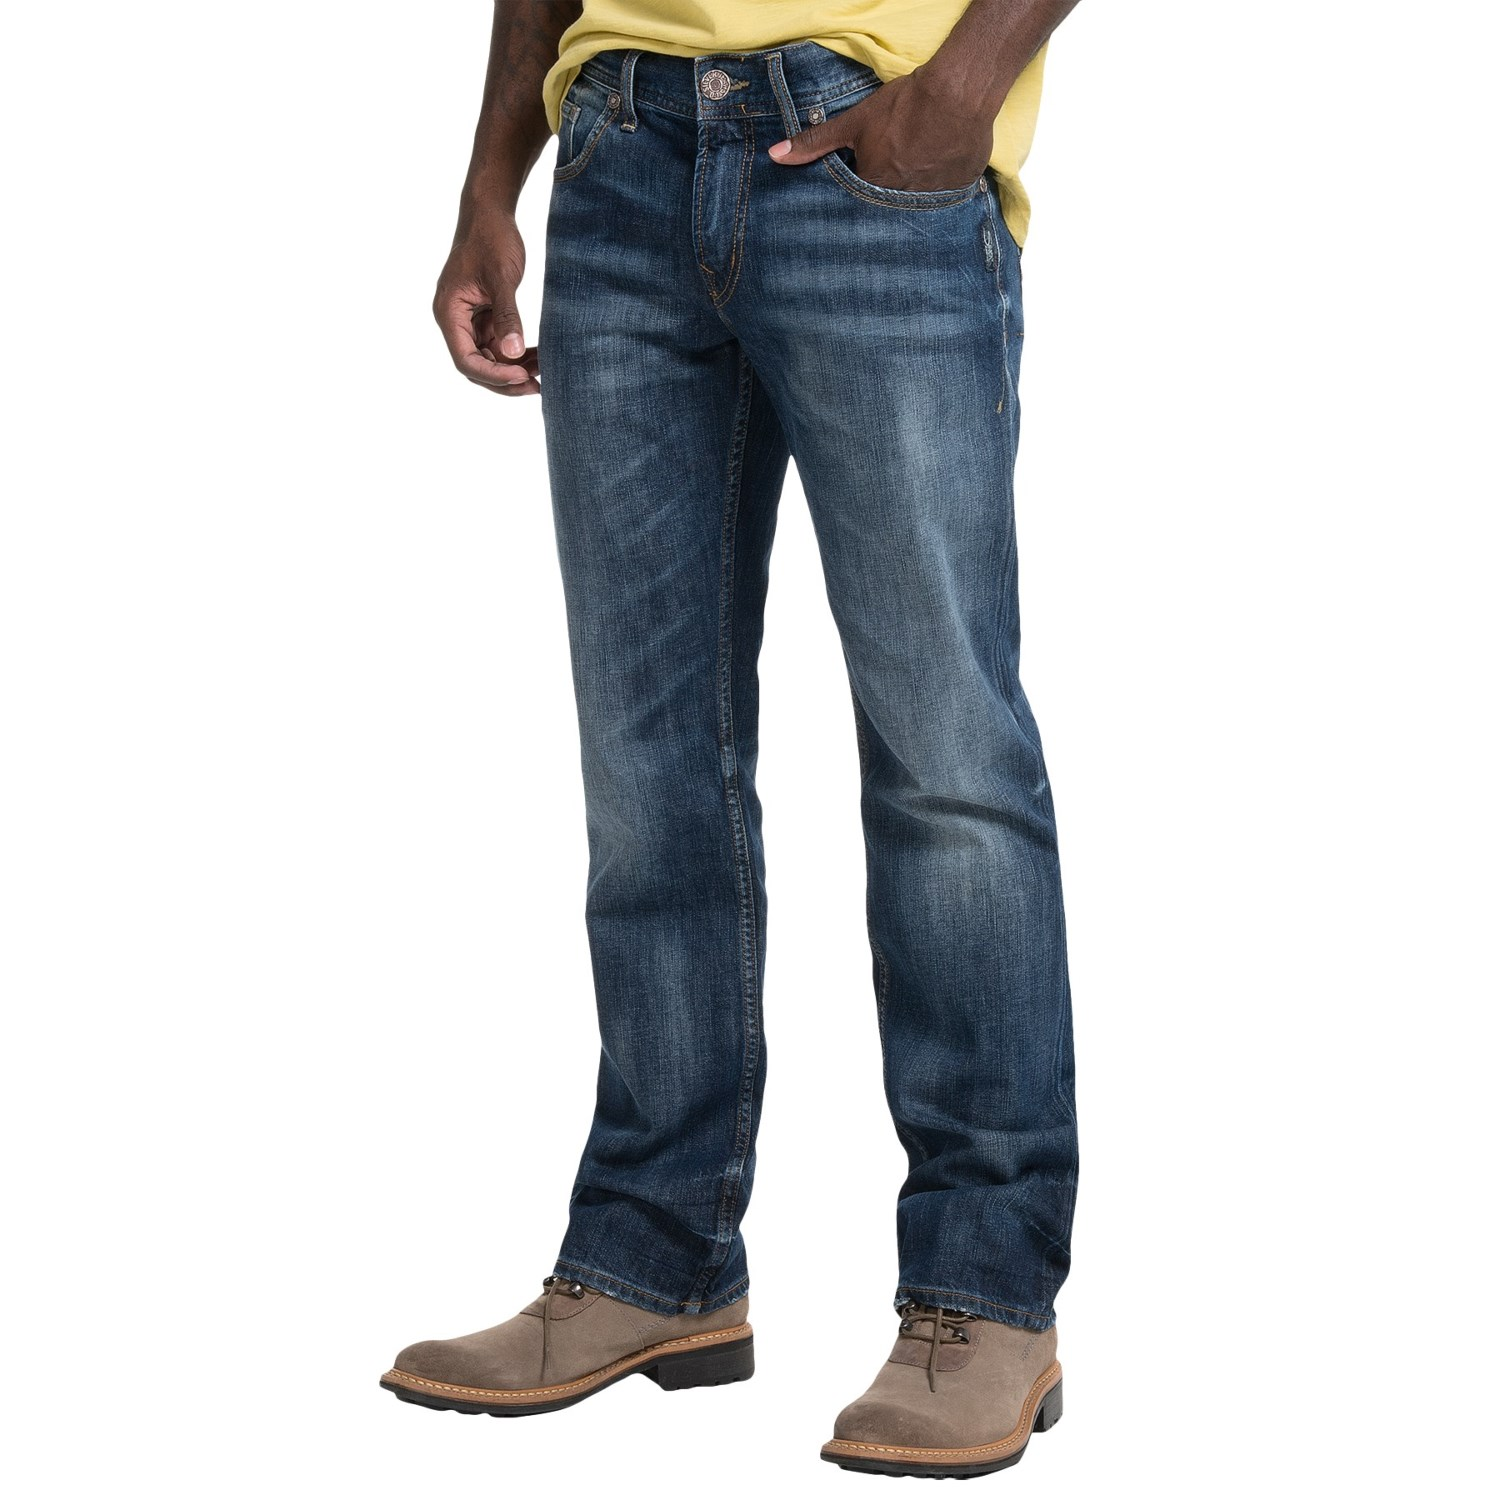 Buy mens silver jeans – Global fashion jeans models